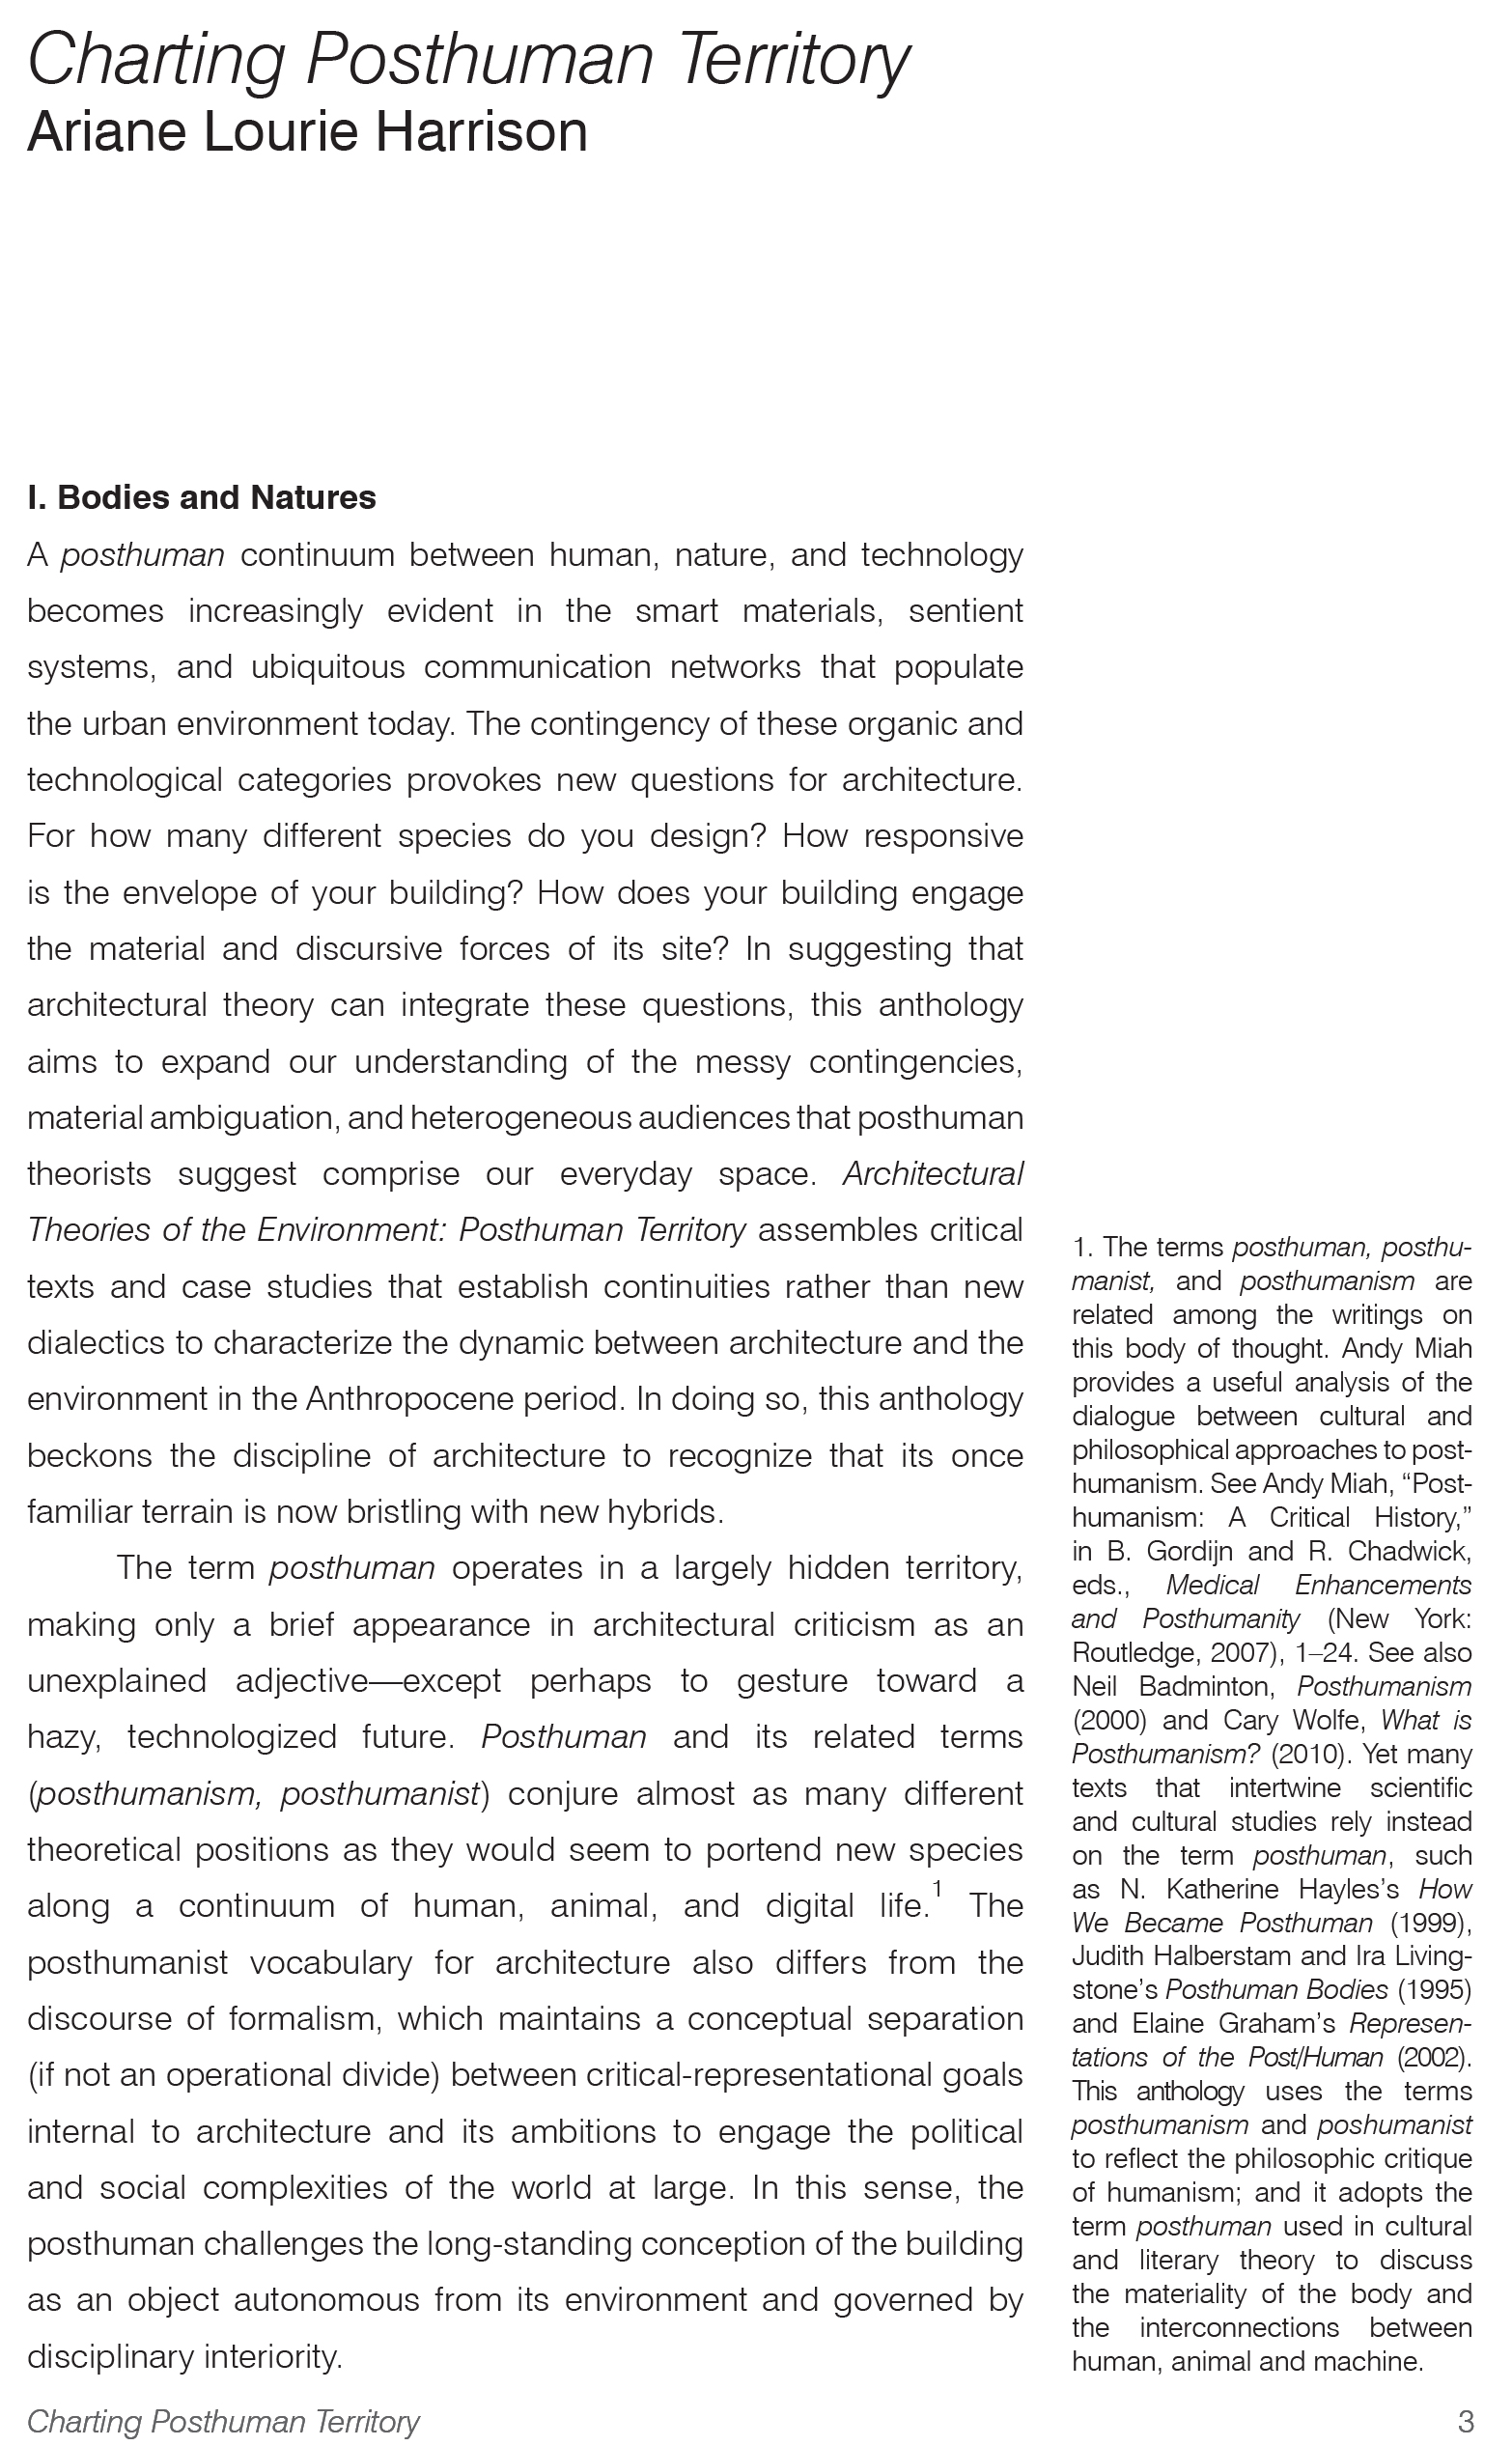 Routledge 11 2013 small-13.jpg